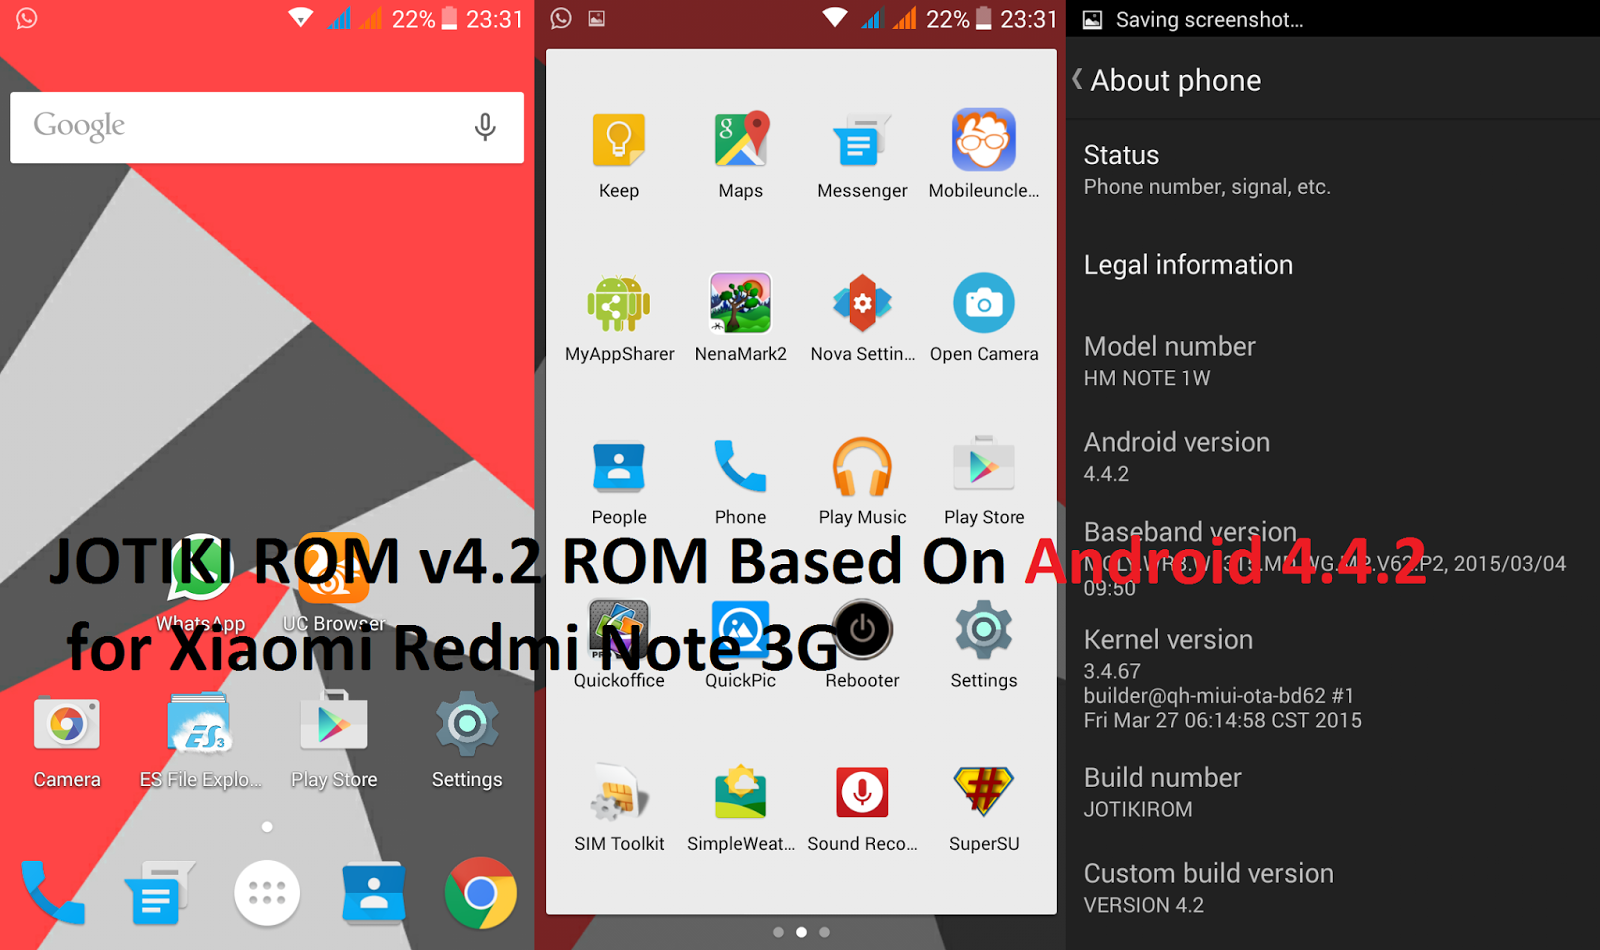 Jotiki Rom 42 For Redmi Note 3g Links Full Review Droid Xiaomi White